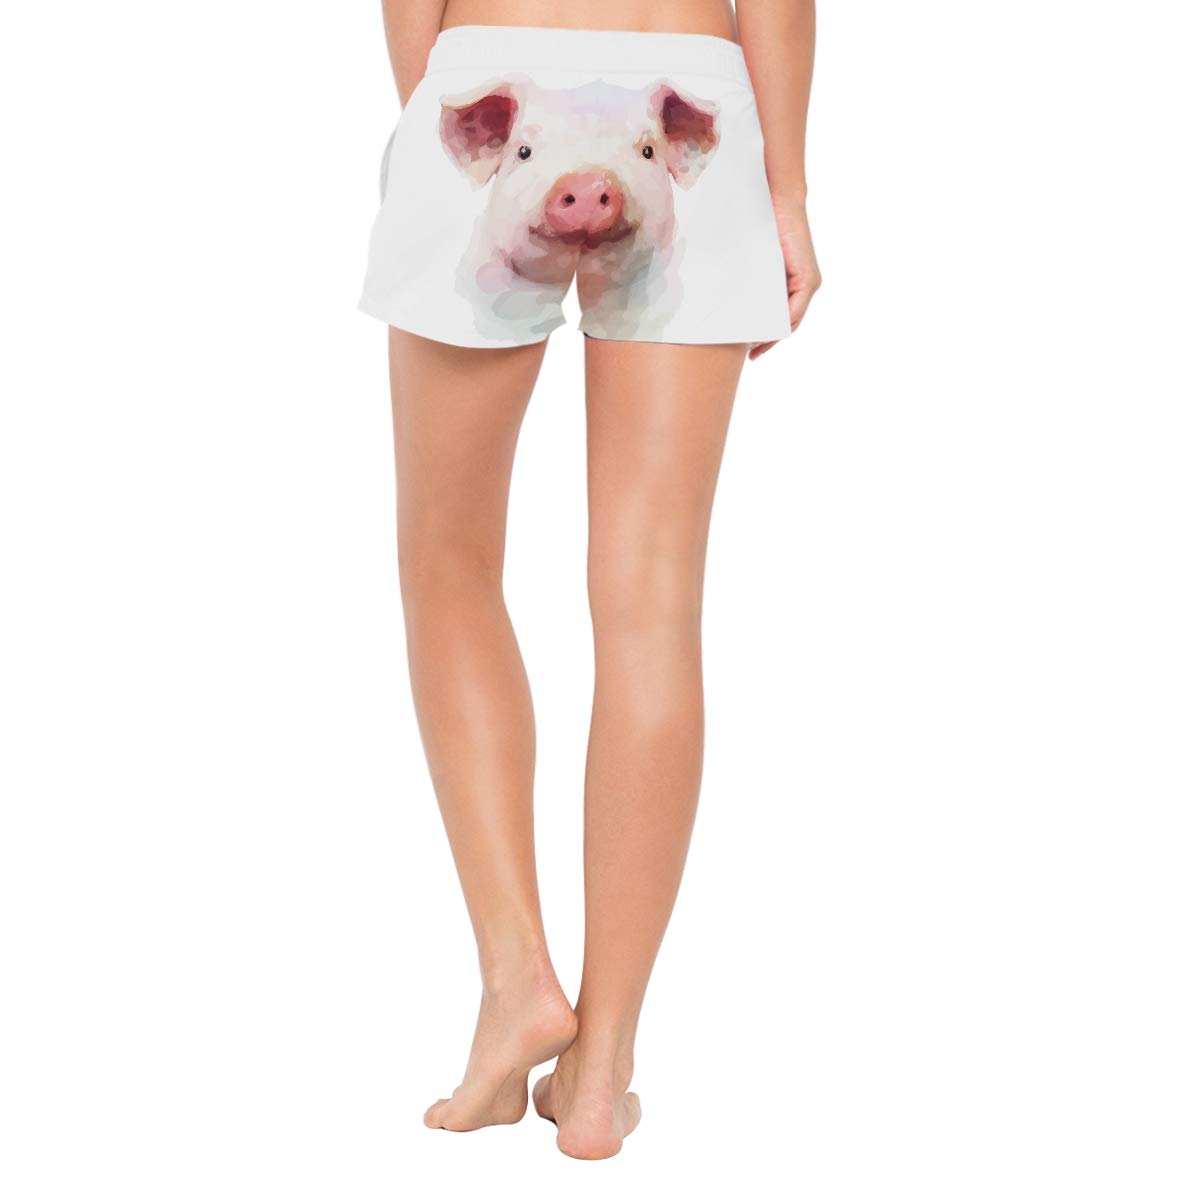 Pig Painting Women/'s Beach Pants Board Short with Built-in Liner